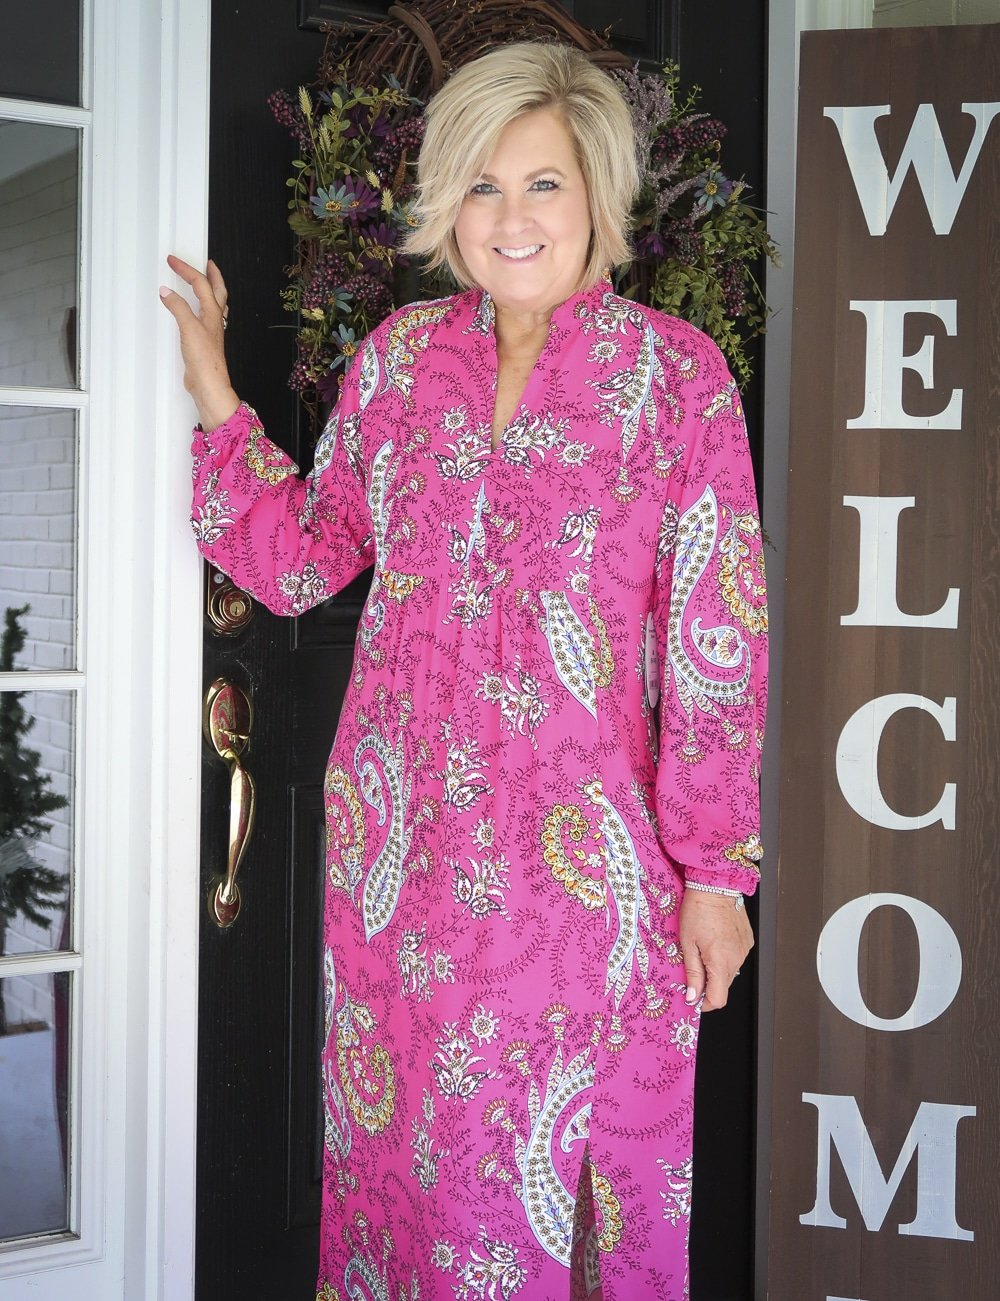 Fashion Blogger 50 Is Not Old is wearing a bright pink paisley midi dress